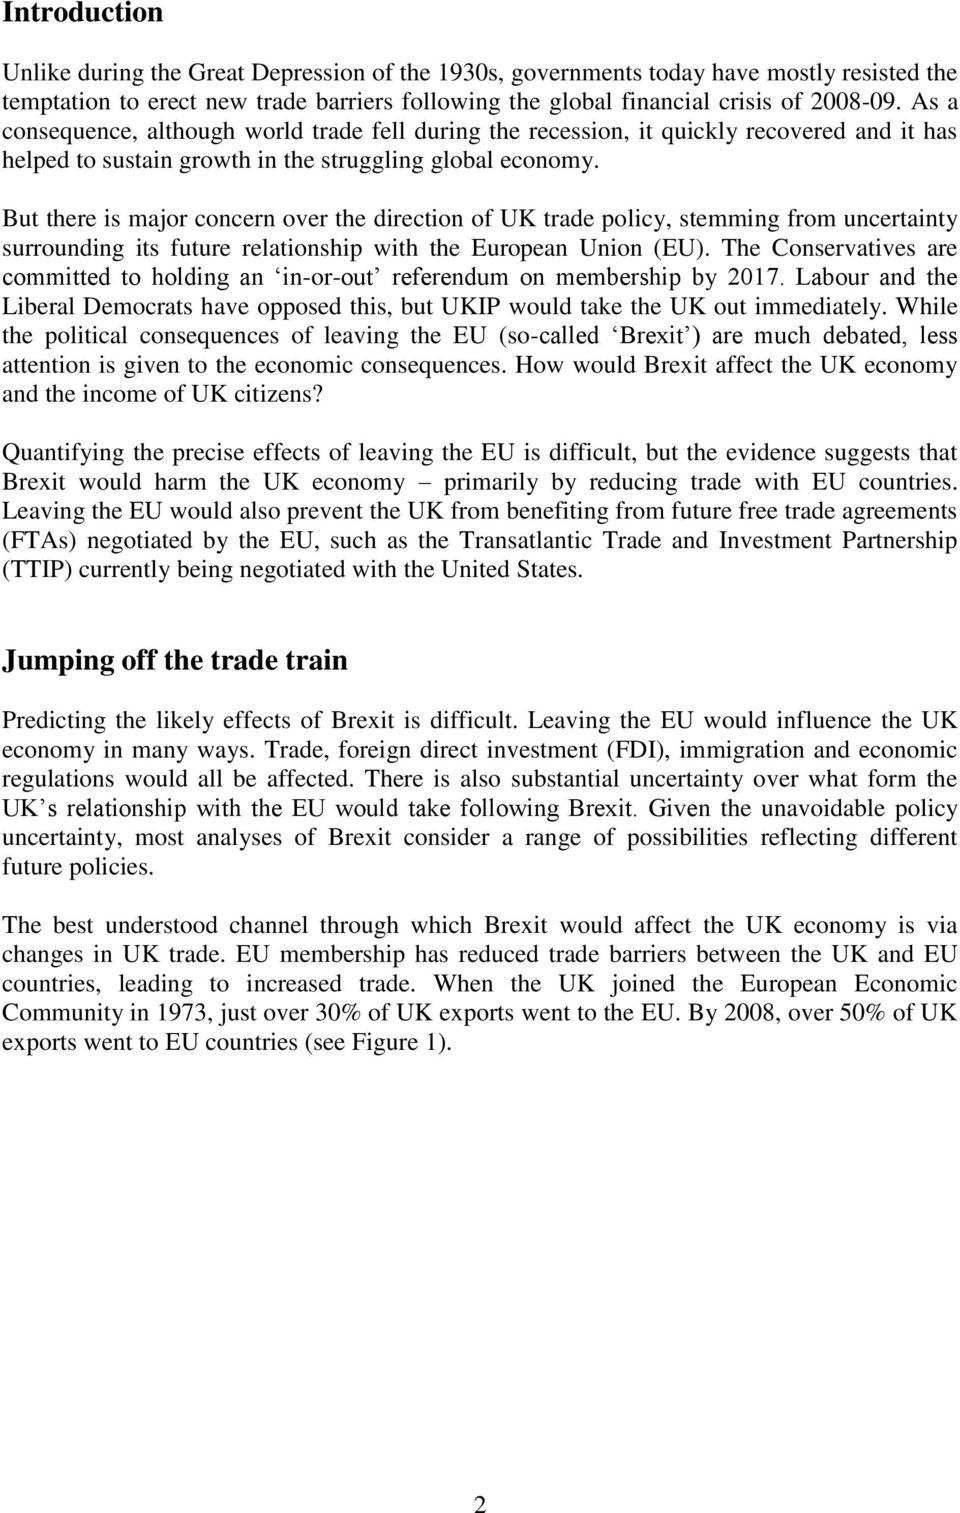 But there is major concern over the direction of UK trade policy, stemming from uncertainty surrounding its future relationship with the European Union (EU).